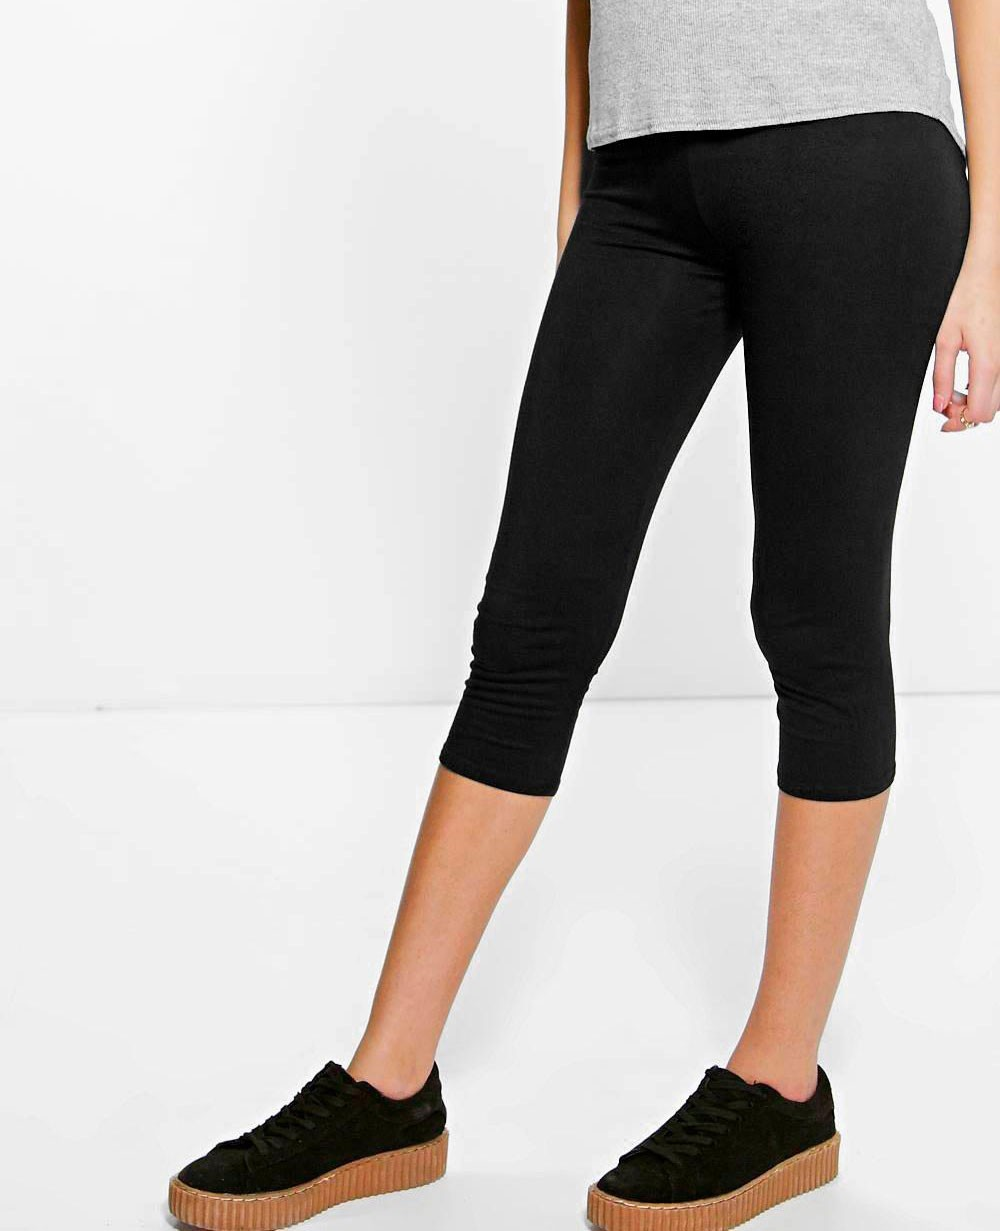 Side Slashed Black Capri Leggings Model is wearing a One Size. Measurements are 32A x 24 x 35 and height is 5' 7